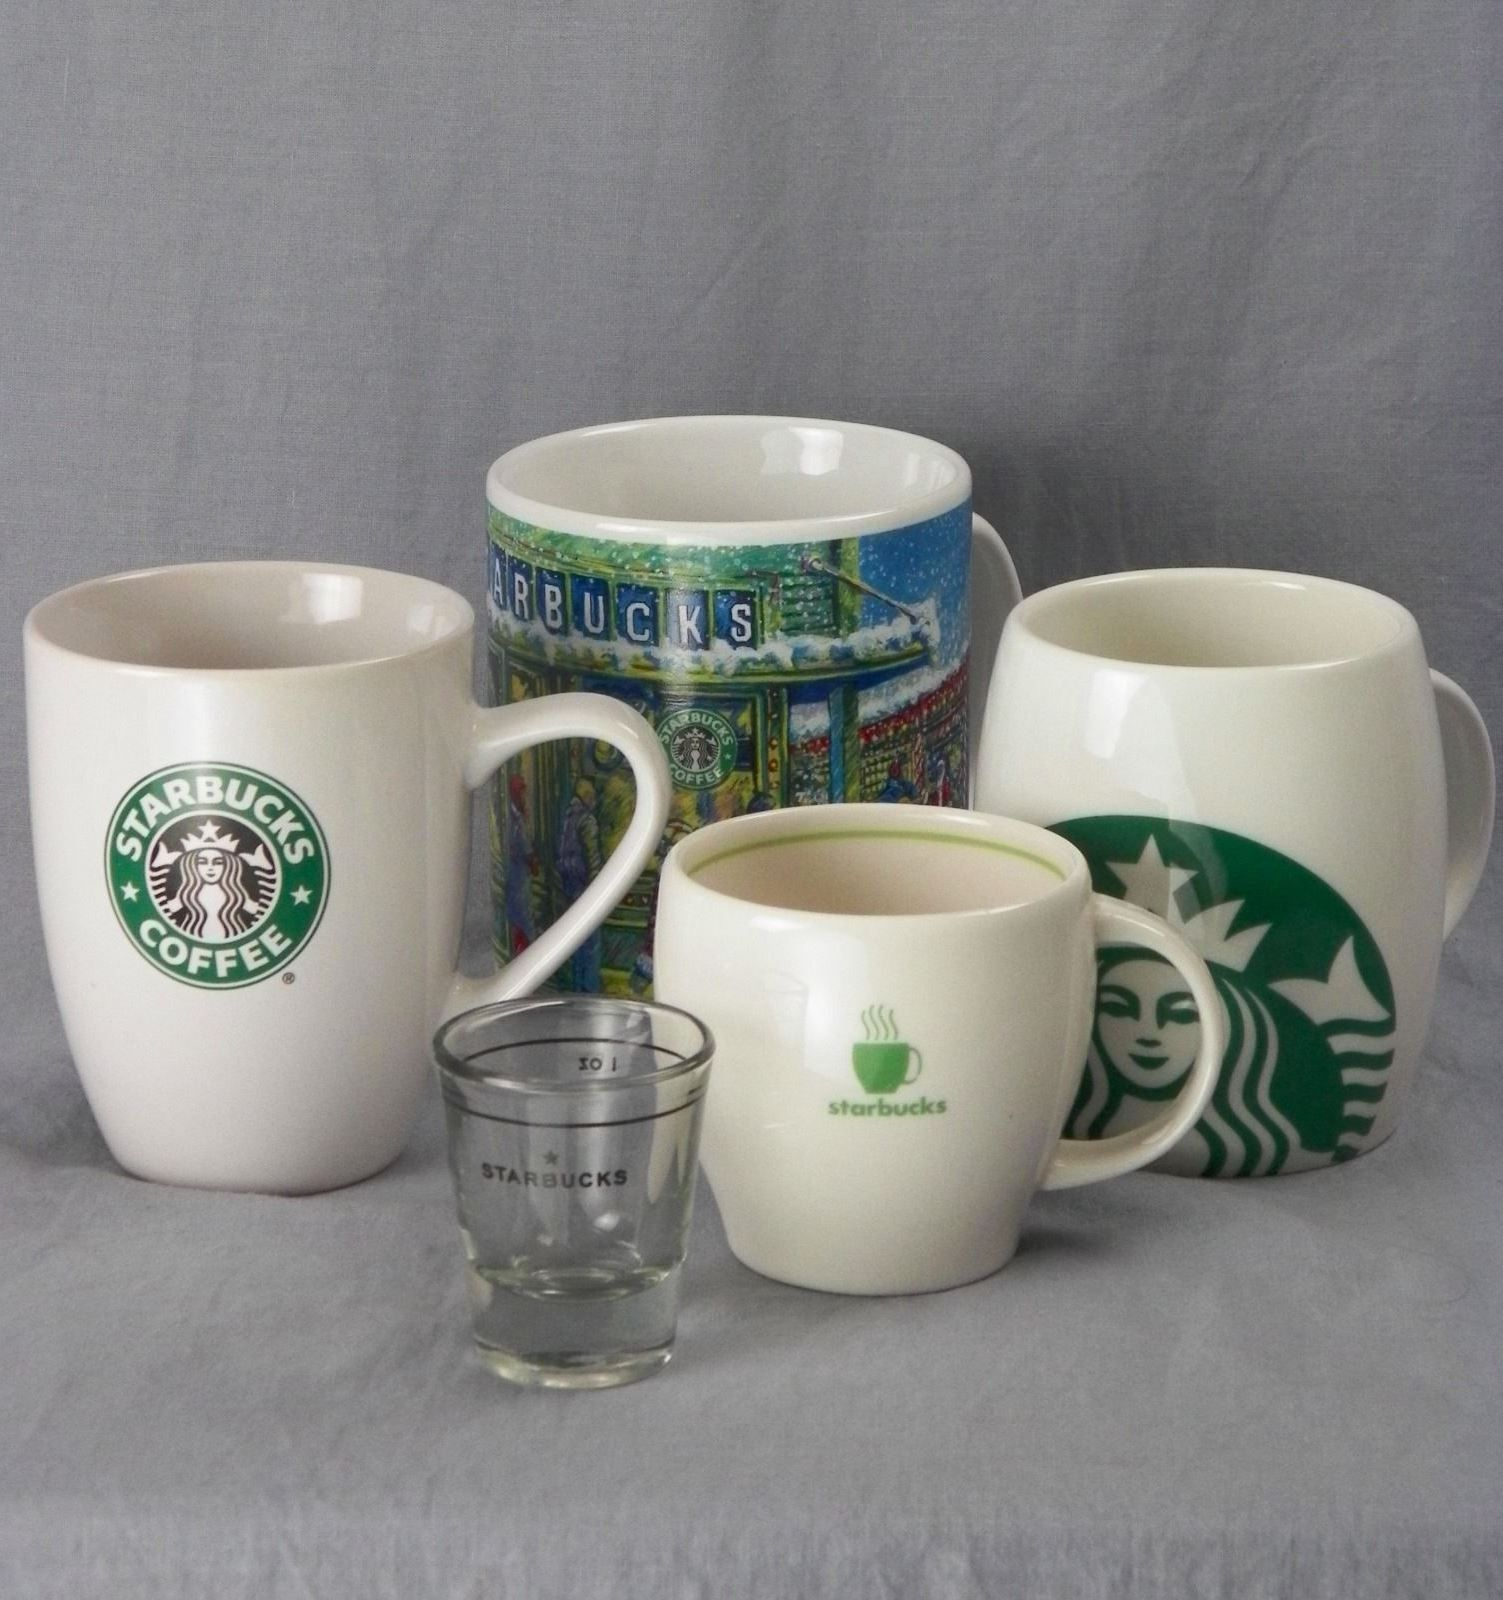 Handsome set of FIVE Starbucks coffee mugs. An instant